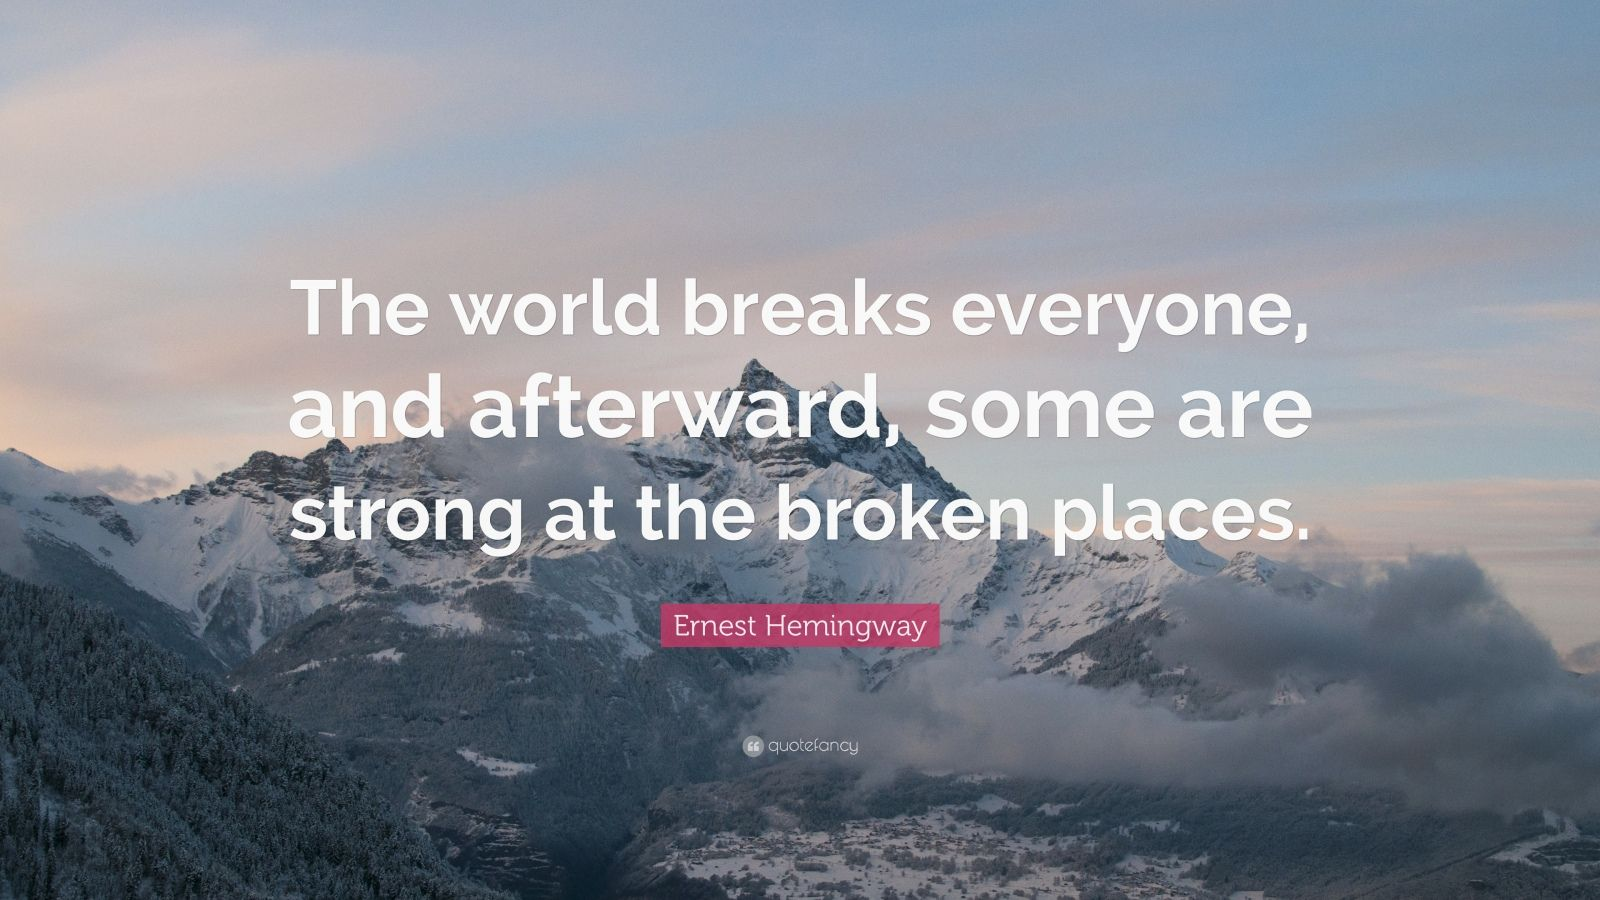 Broken Love Wallpapers With Quotes Ernest Hemingway Quote The World Breaks Everyone And